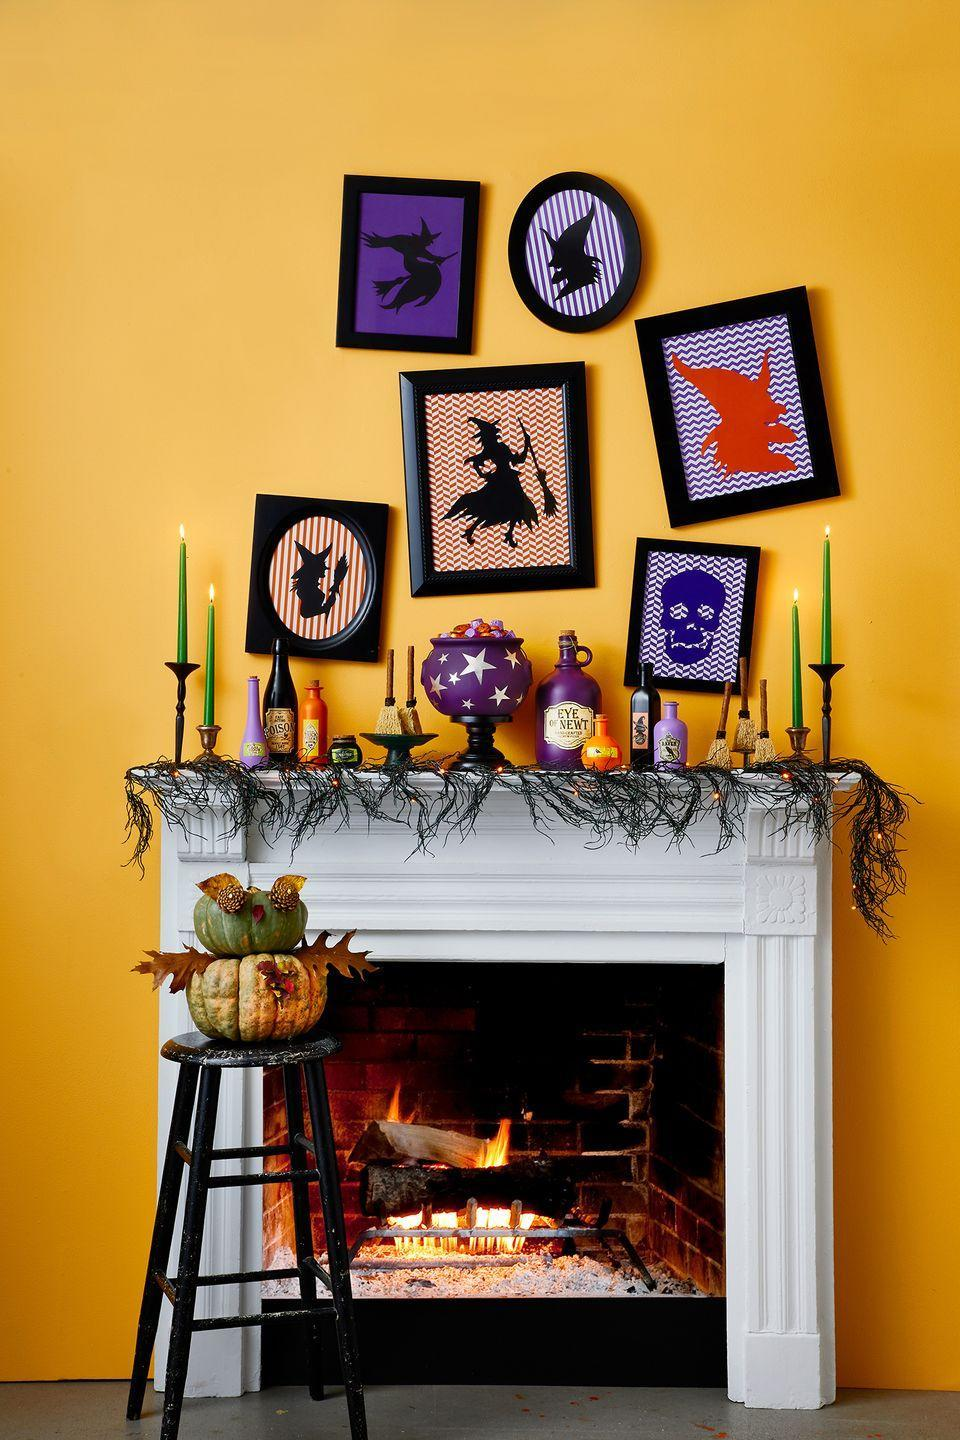 <p>Guests will freak out at this Halloween mantel setup, complete with skulls and witch graphics in striking black frames. </p>